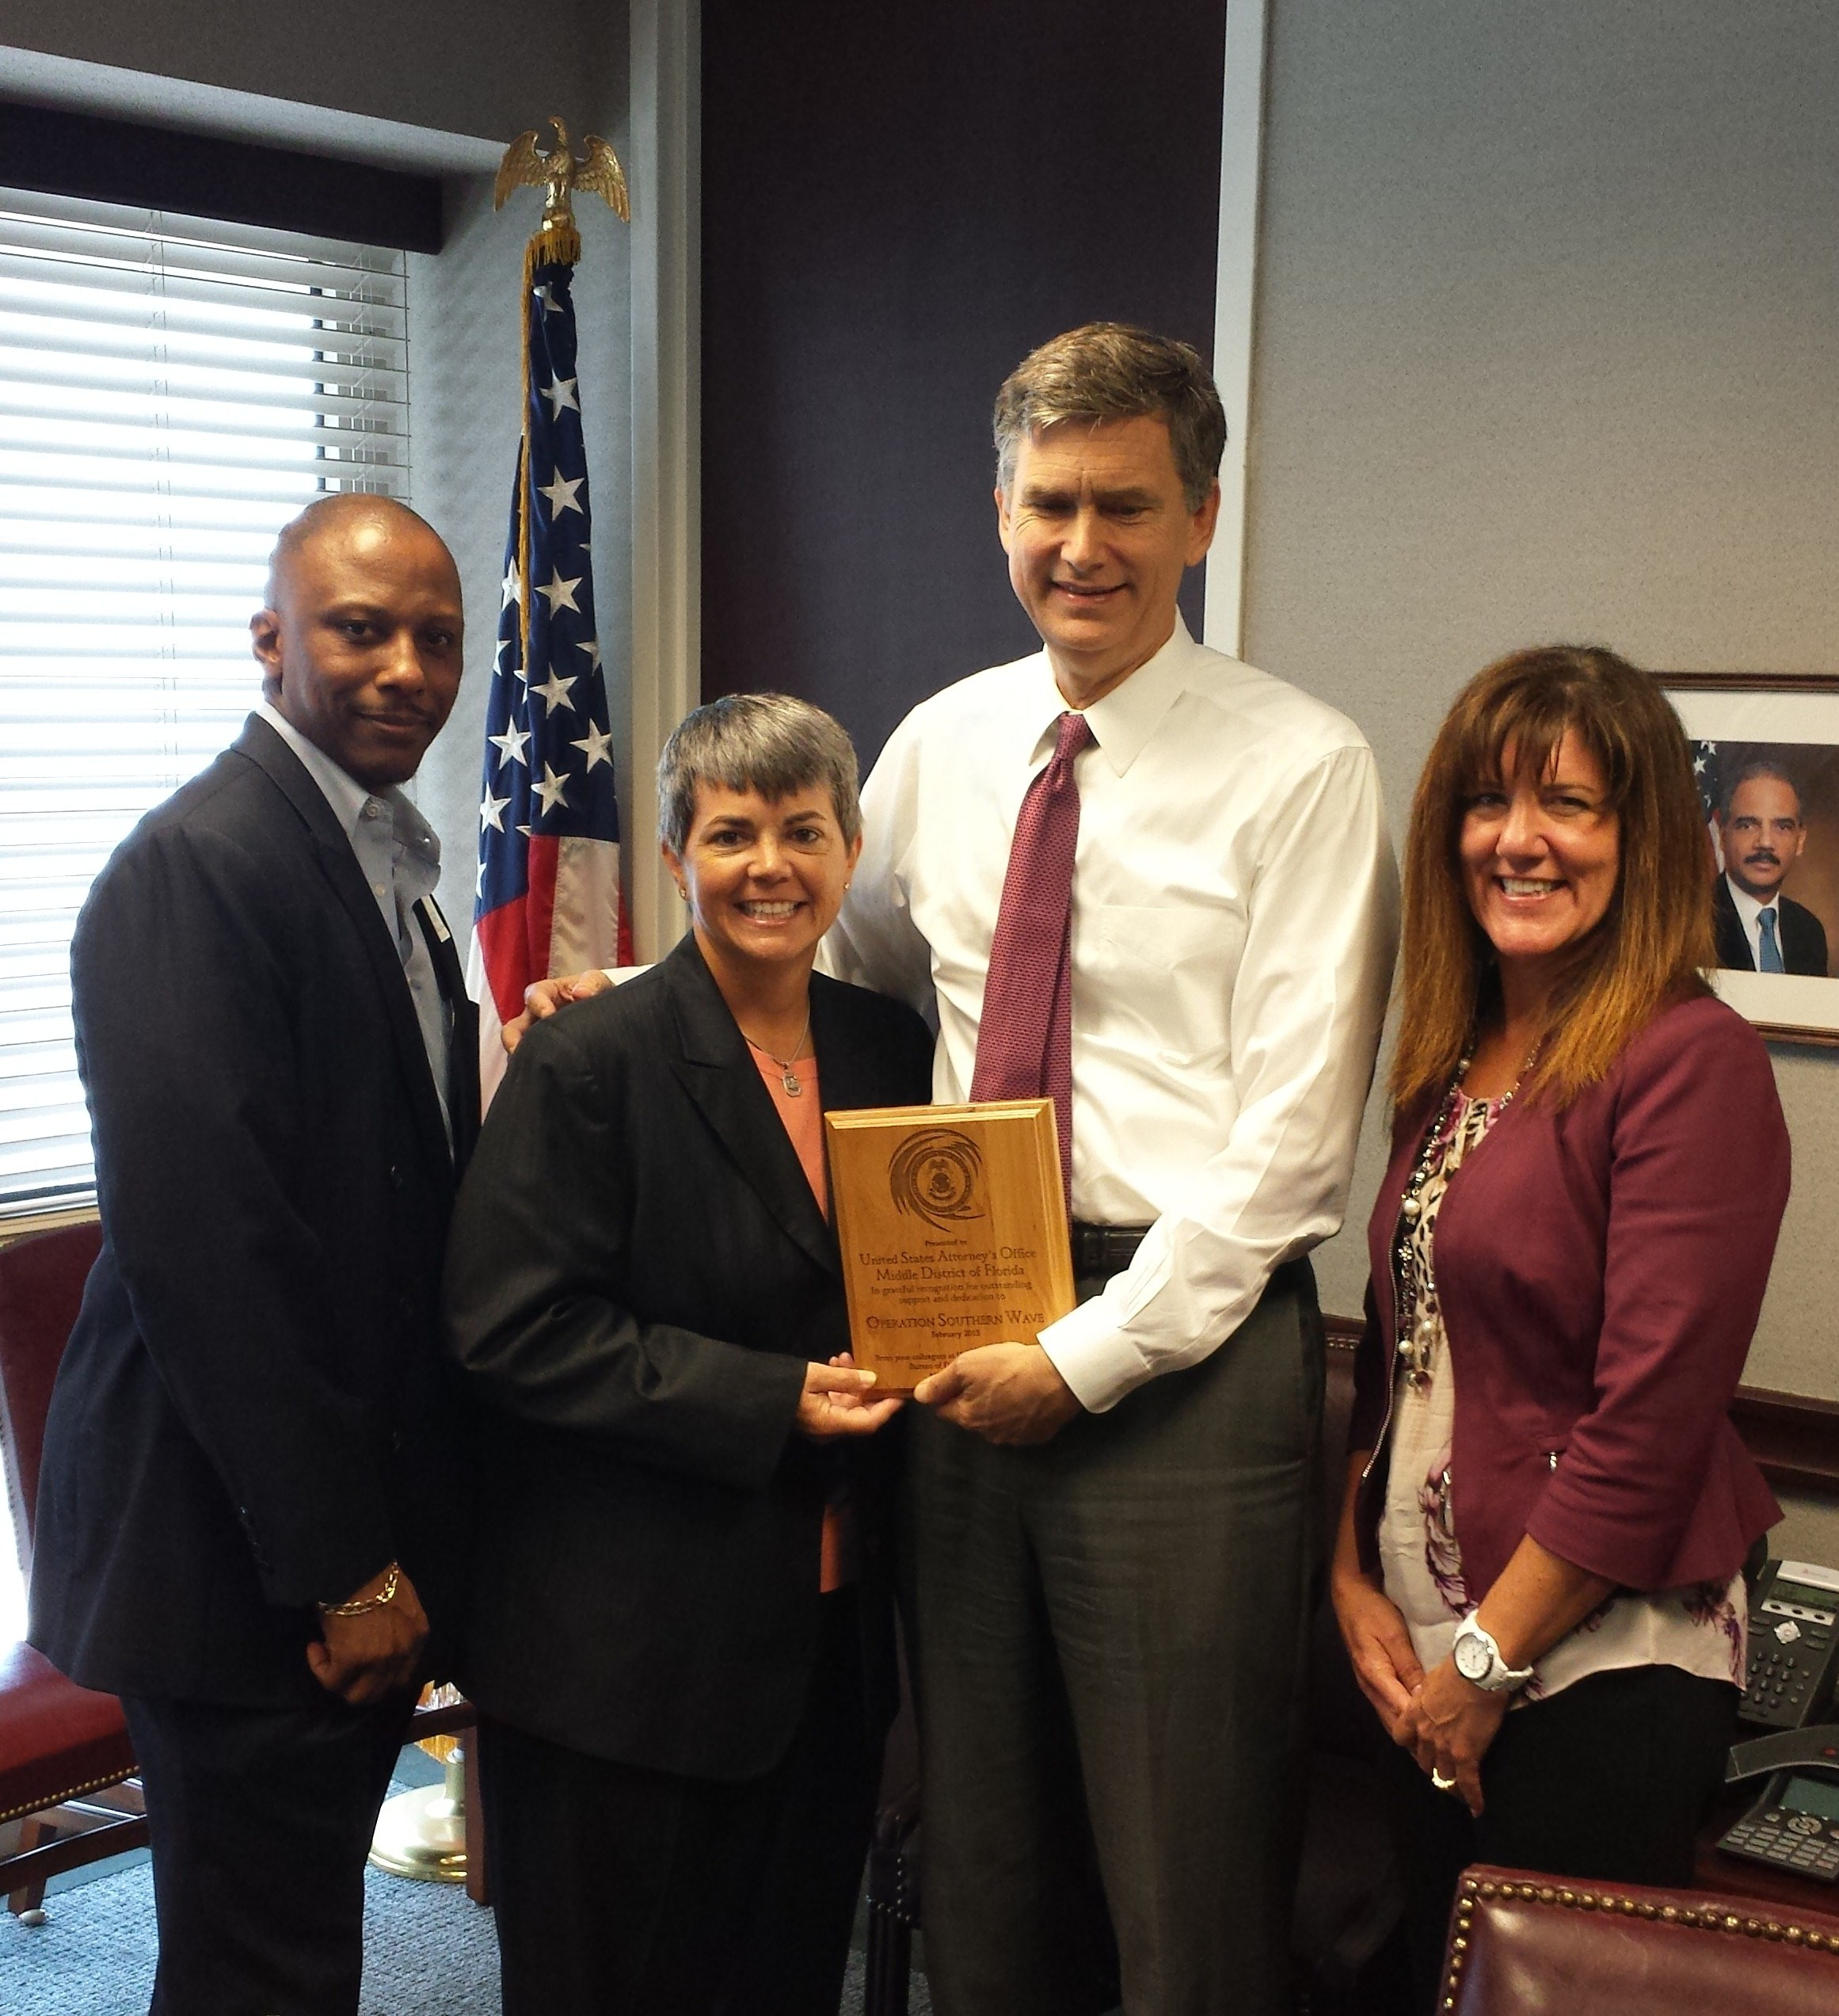 U.S. Attorney Lee Bentley is presented with an award